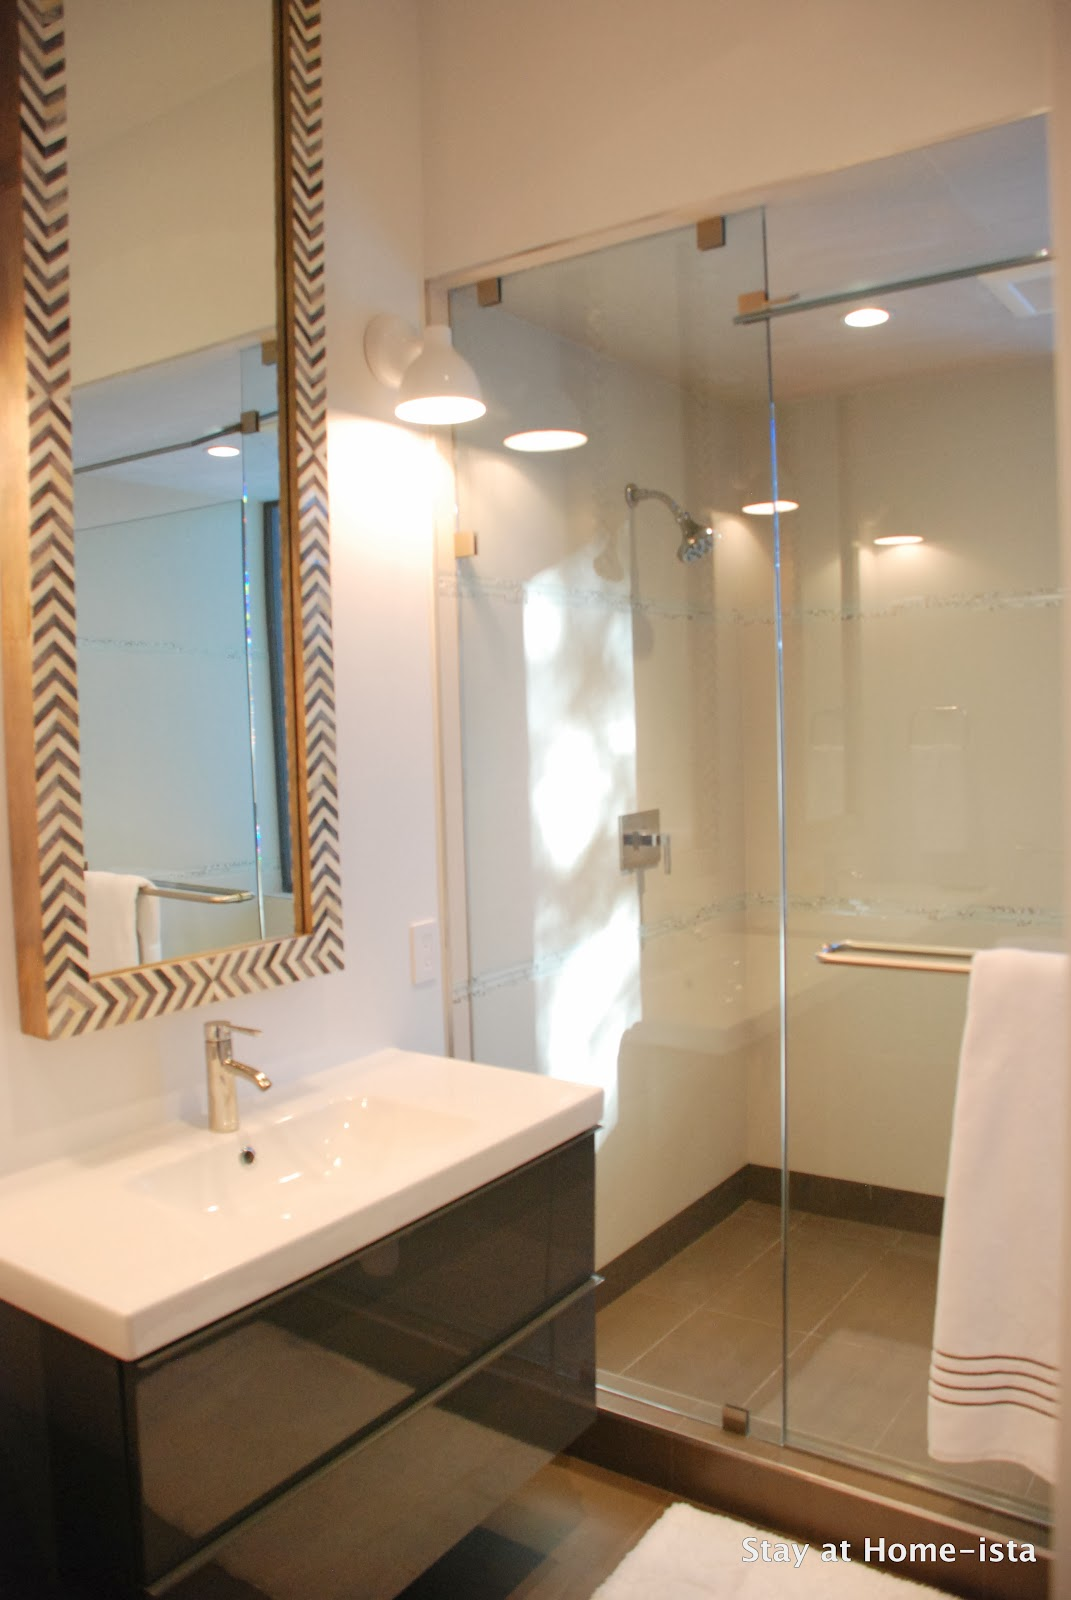 Inspirational Ikea bathroom vanities in a modern bathroom with tall West Elm mirrors